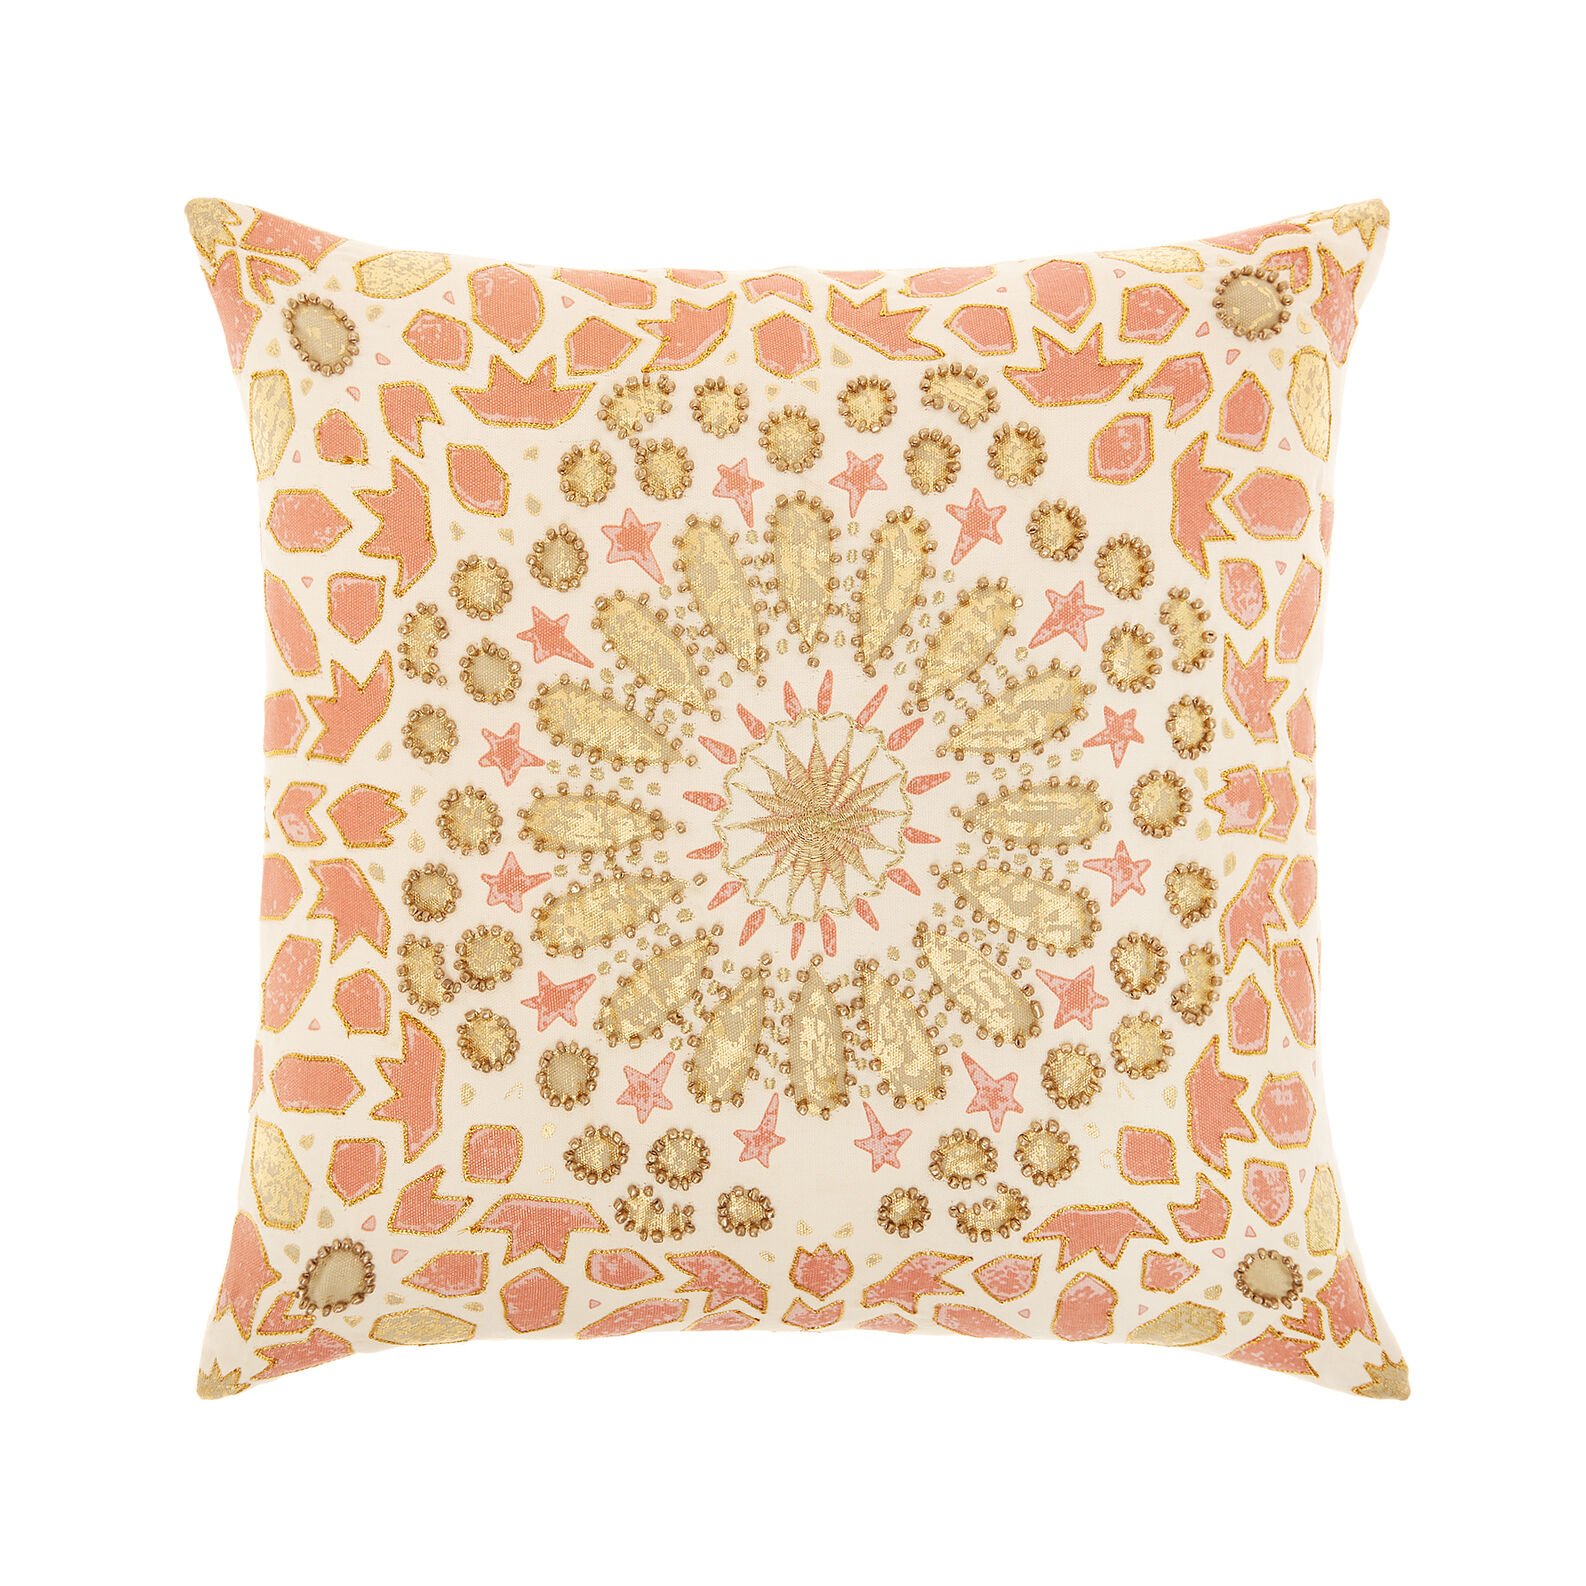 Cushion with embroidery and beads